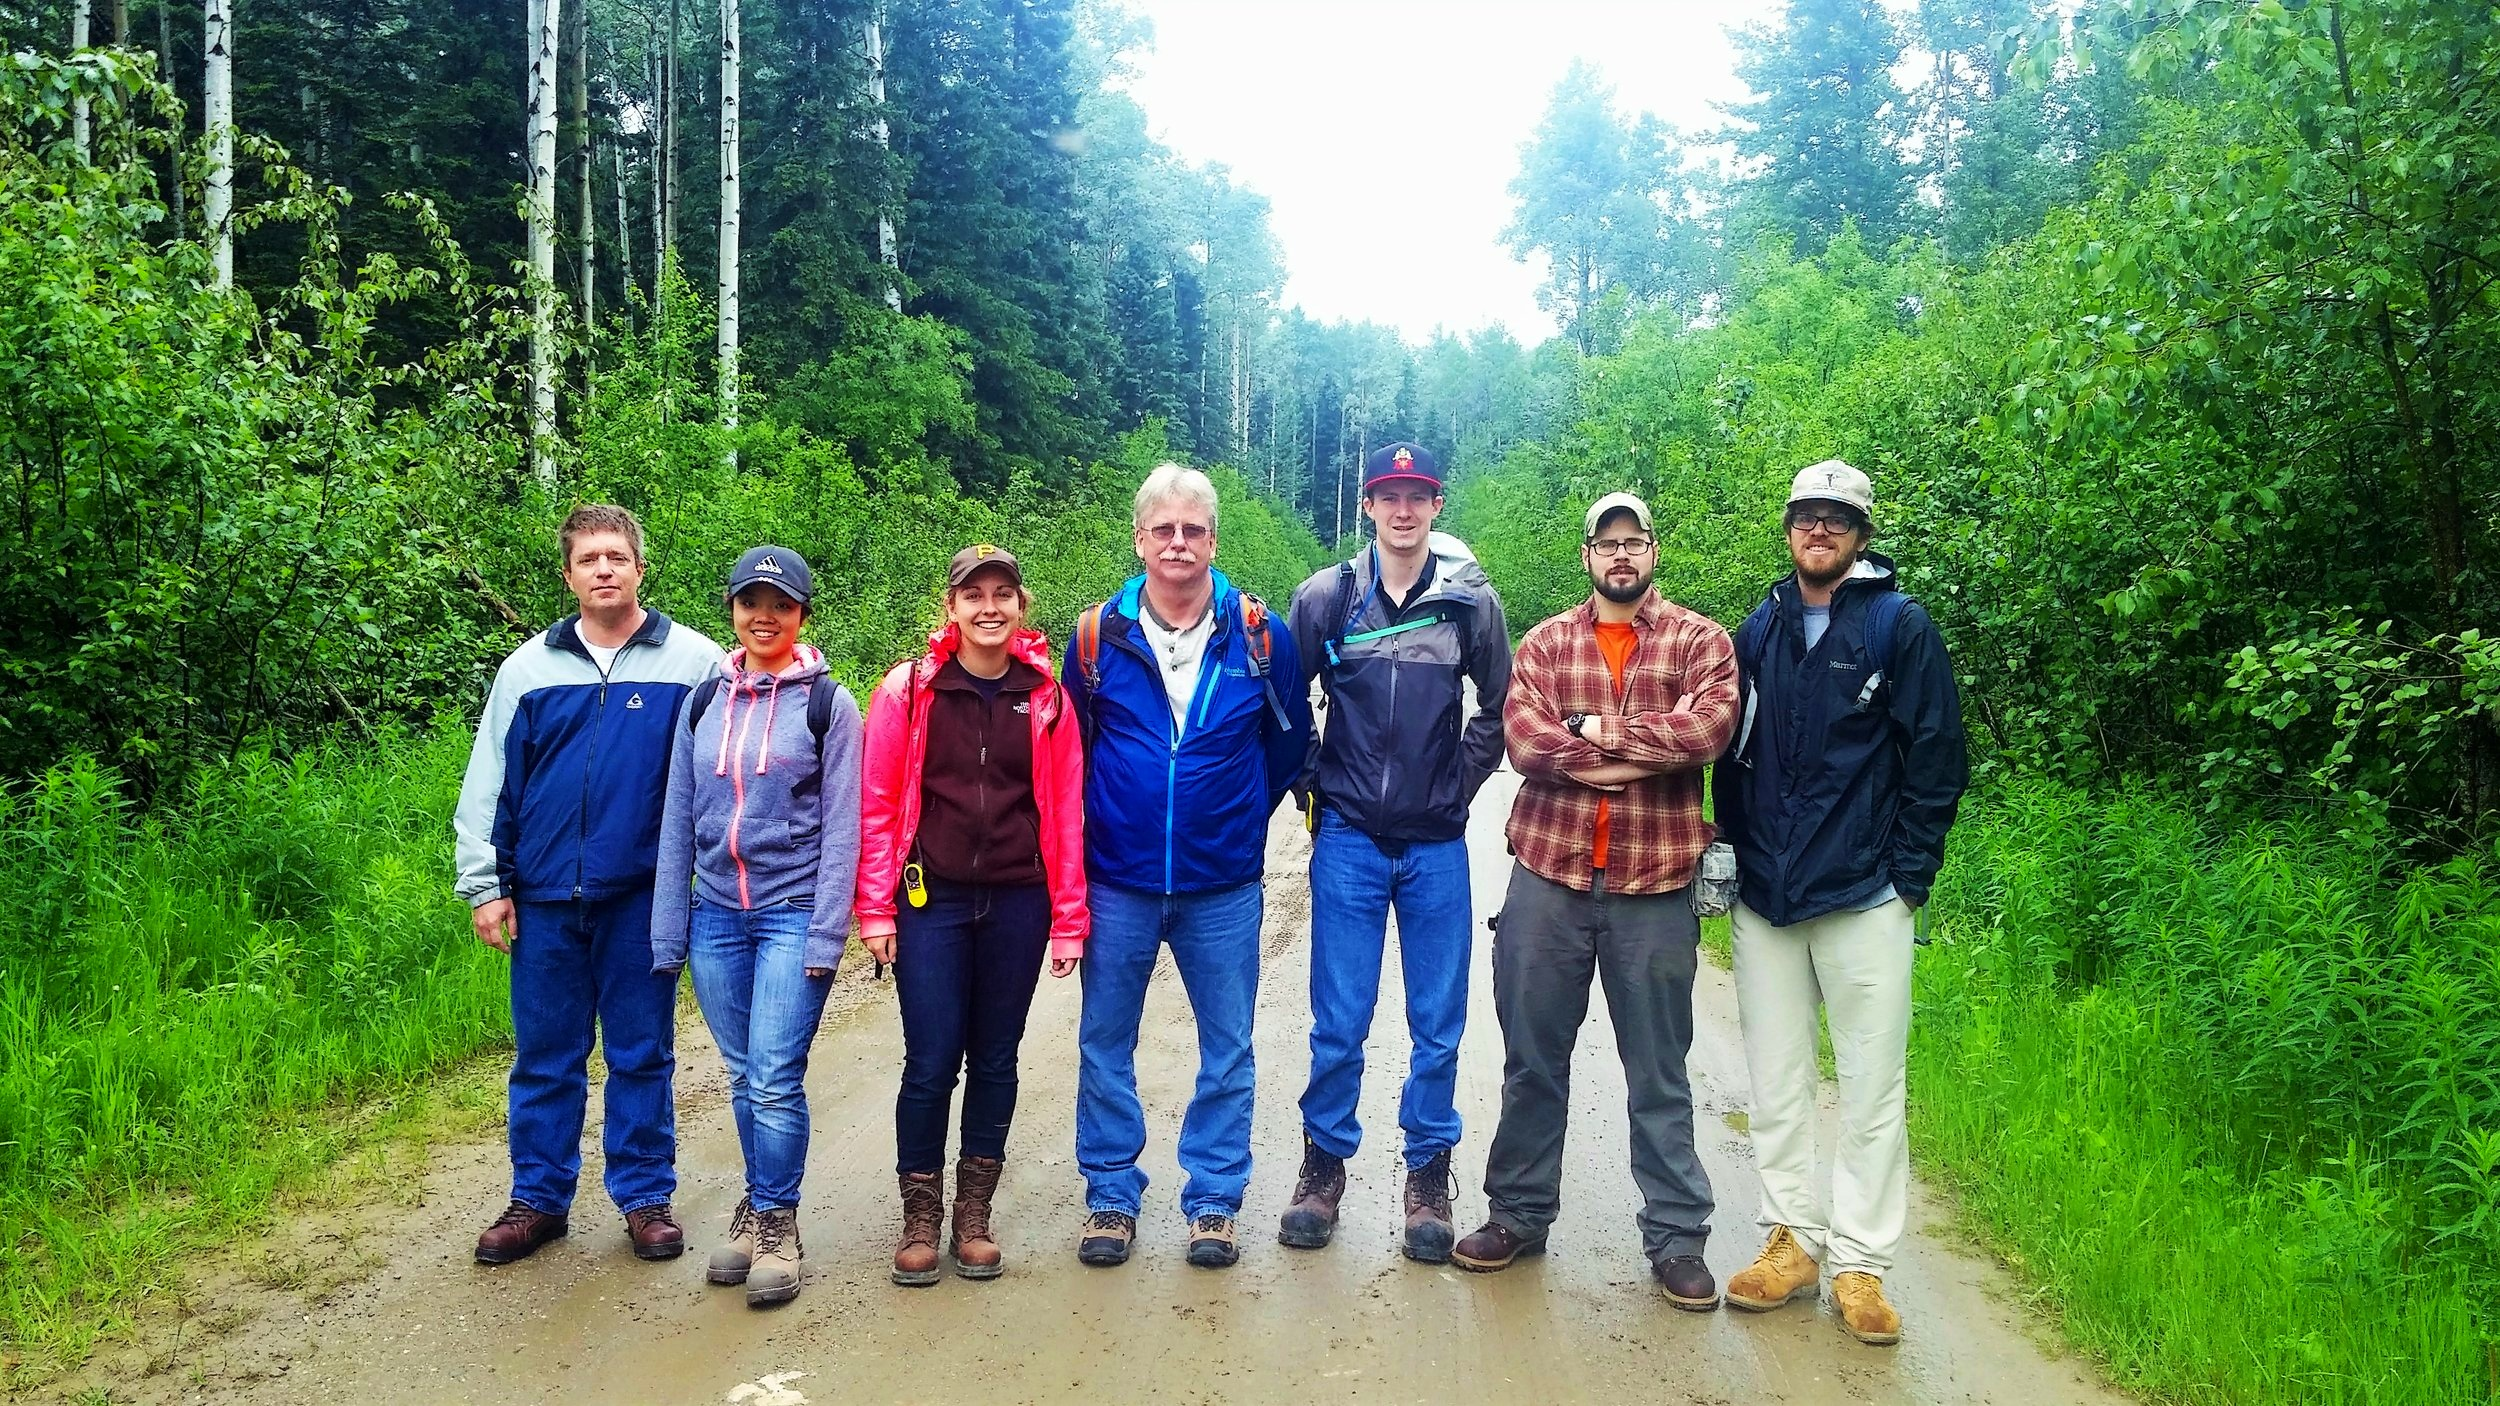 2016 Interns from: University of British Columbia, Virginia Tech, McGill University, University of Maine, and Colorado School of Mines